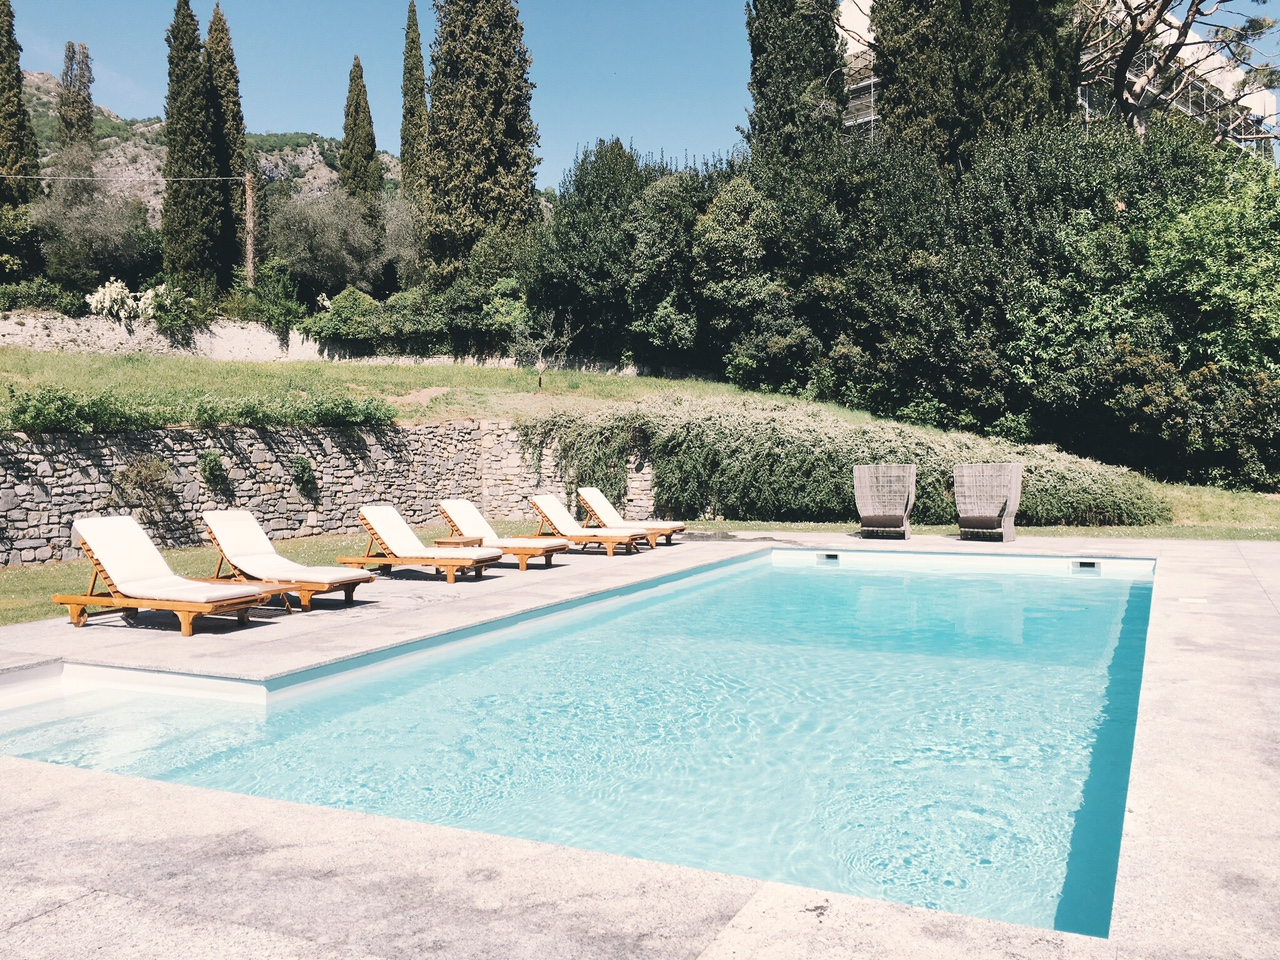 Pool with lounge chairs at Villa Sola Cabiati